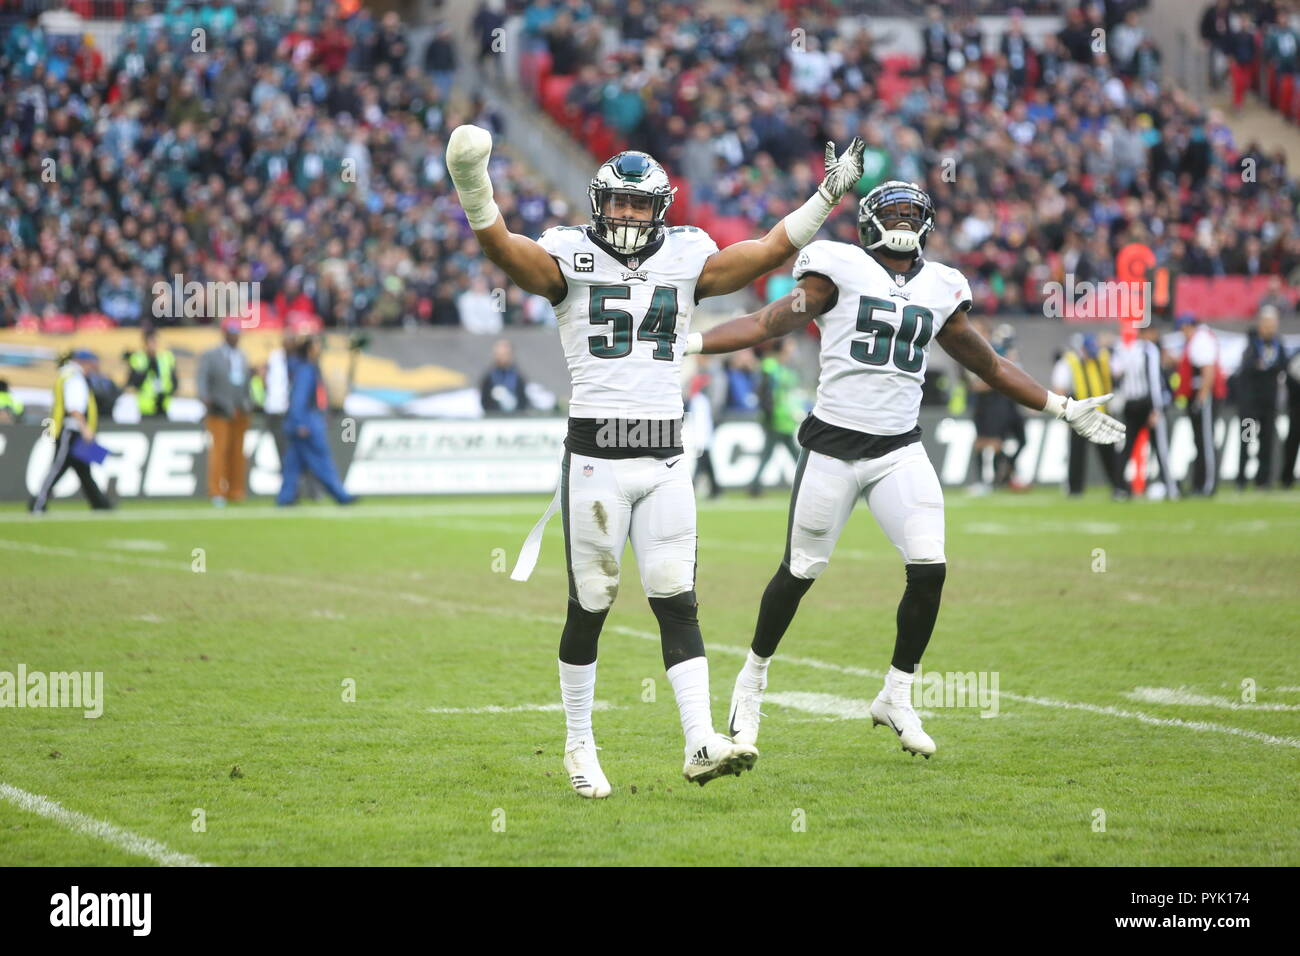 London, UK. 28 October 2018.   Philadelphia Eagles Linebacker Kamu Grugier-Hill (54) and Philadelphia Eagles Linebacker Paul Worrilow (50) celebration  at the Eagles at Jaguars - credit Glamourstock Credit: glamourstock/Alamy Live News - Stock Image